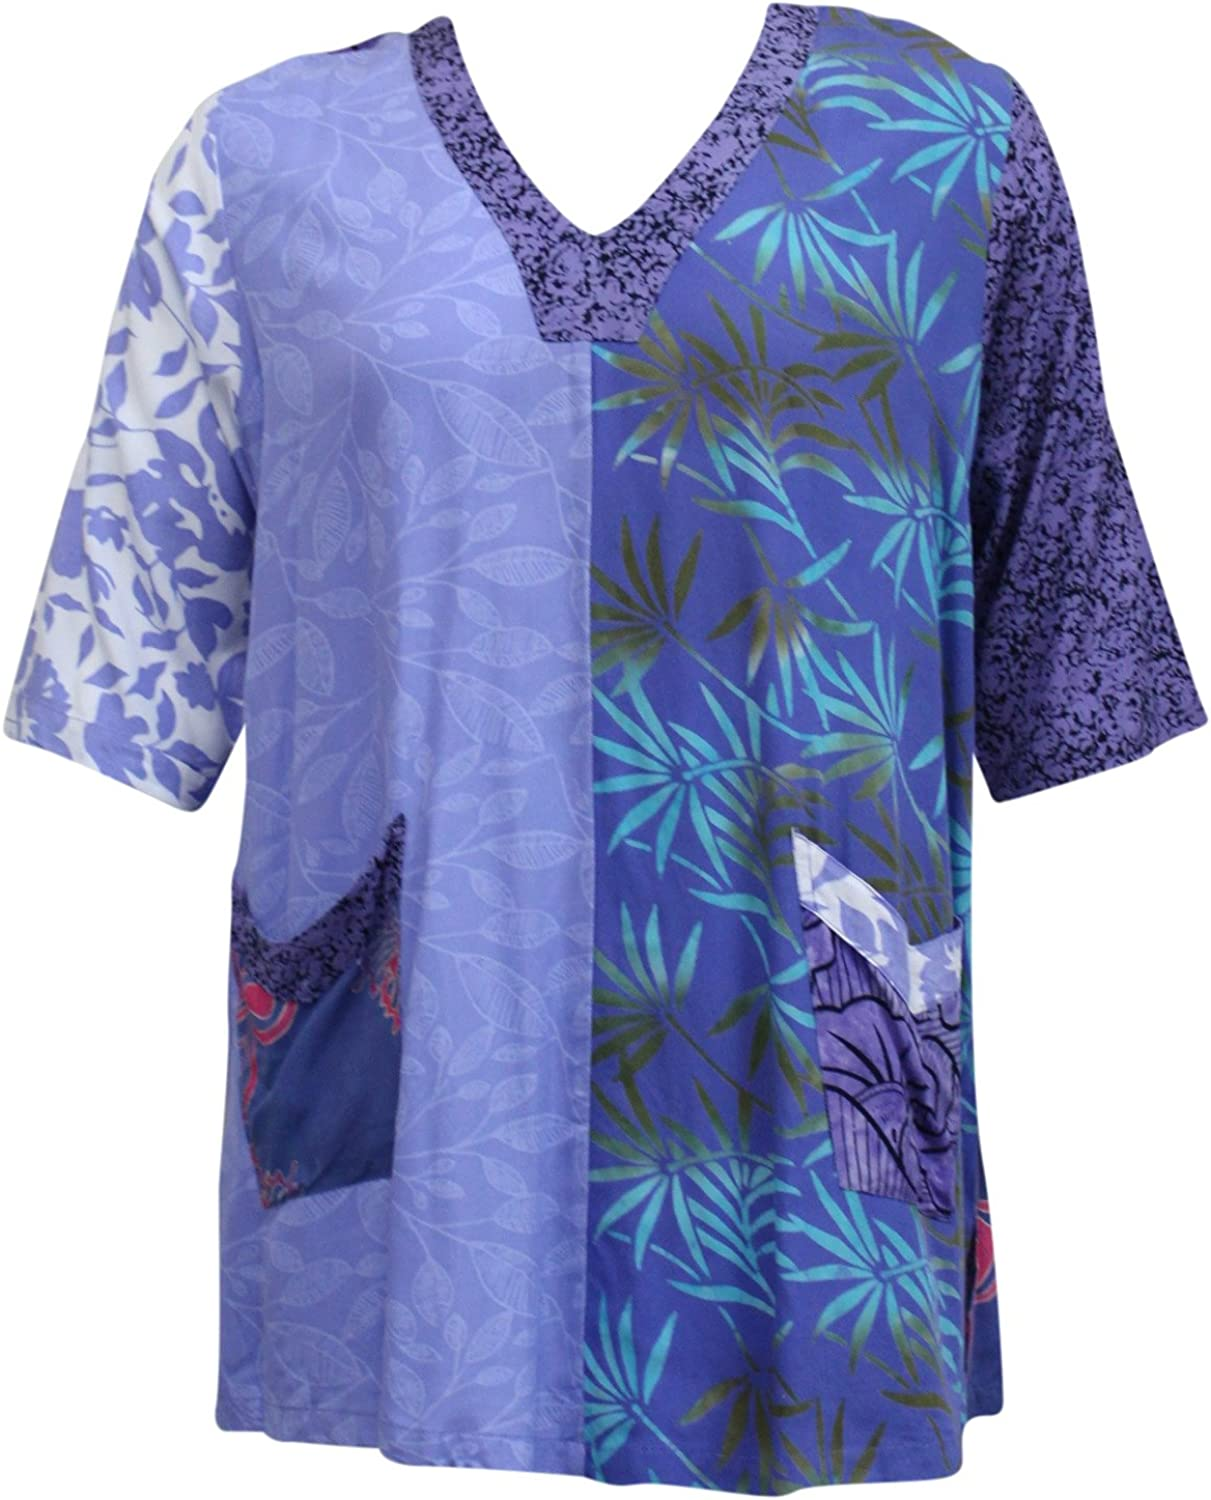 Wild Thing Wild Woman Batik Patchwork Two Pocket Patchwork Tunic Top